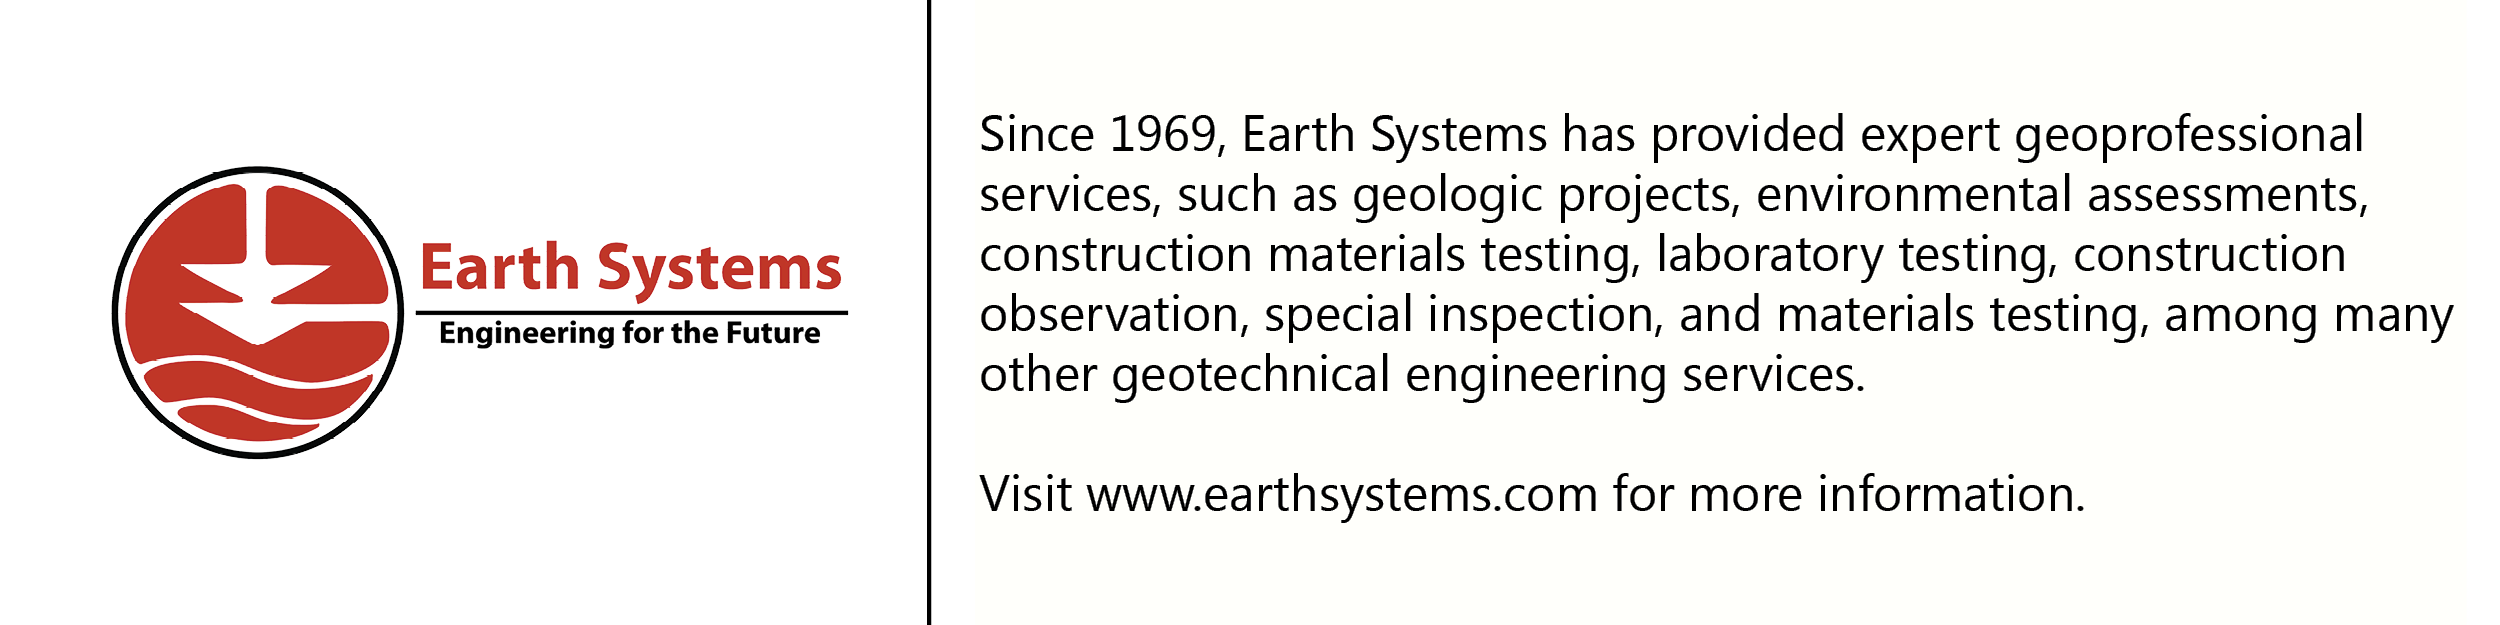 Earth Systems logo with description of company